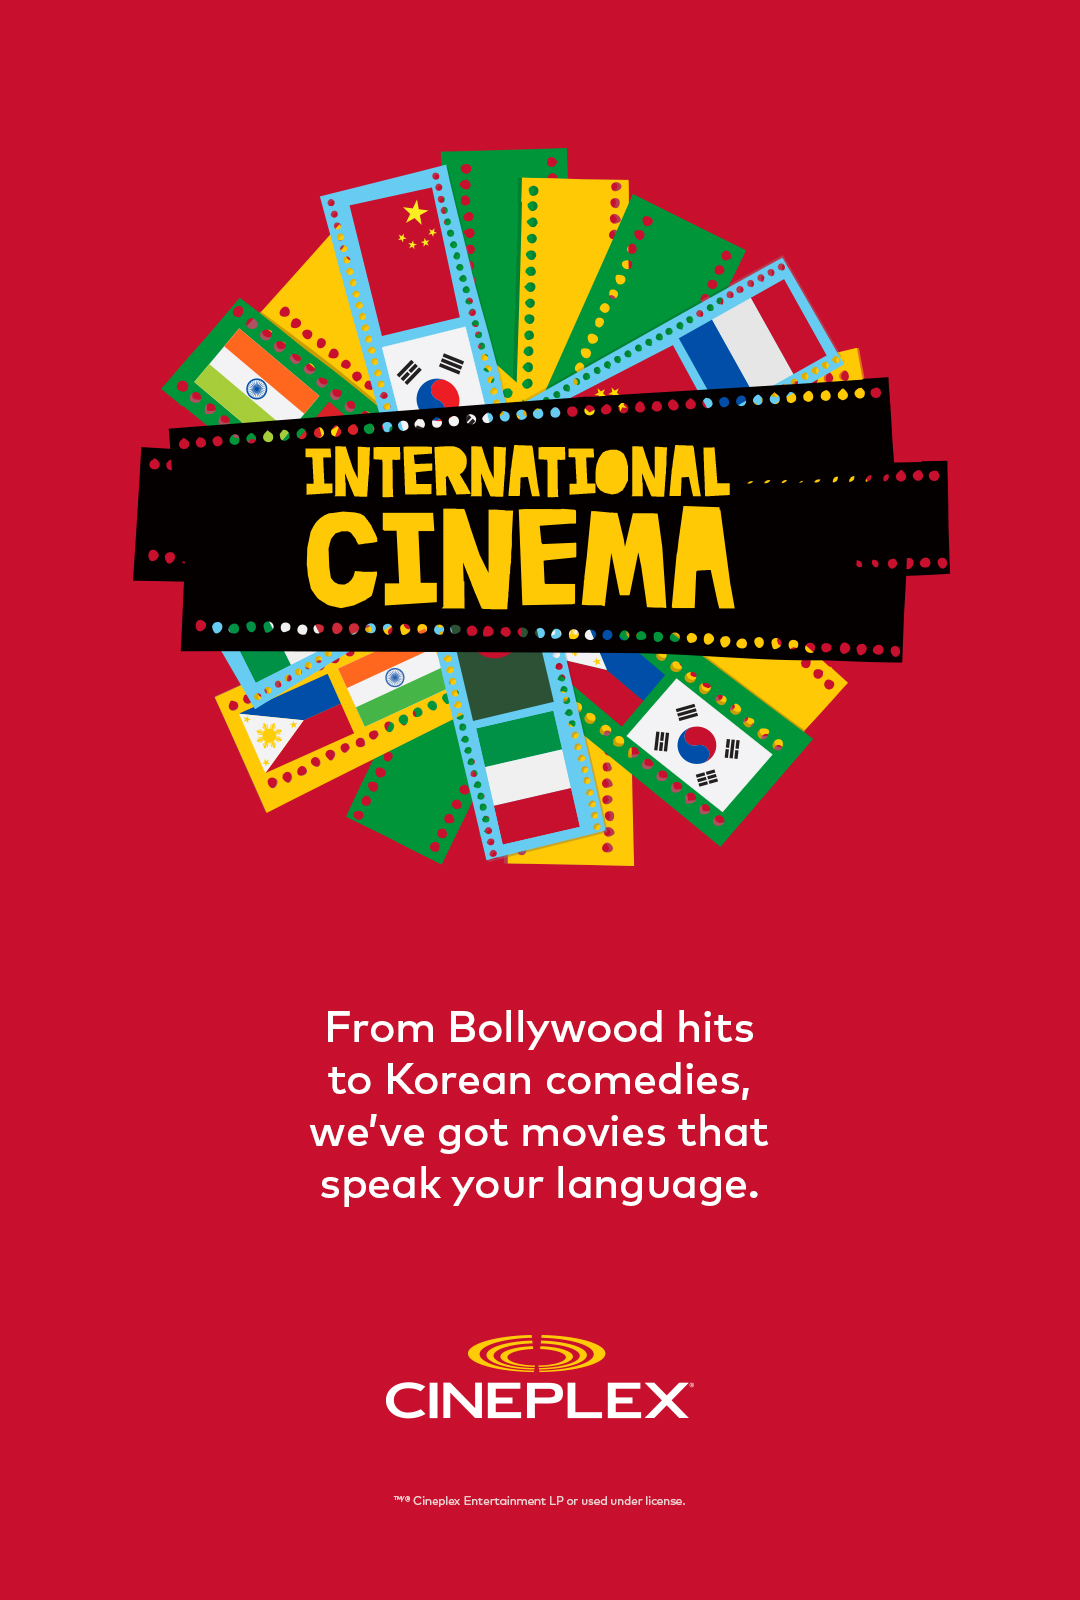 International Cinema